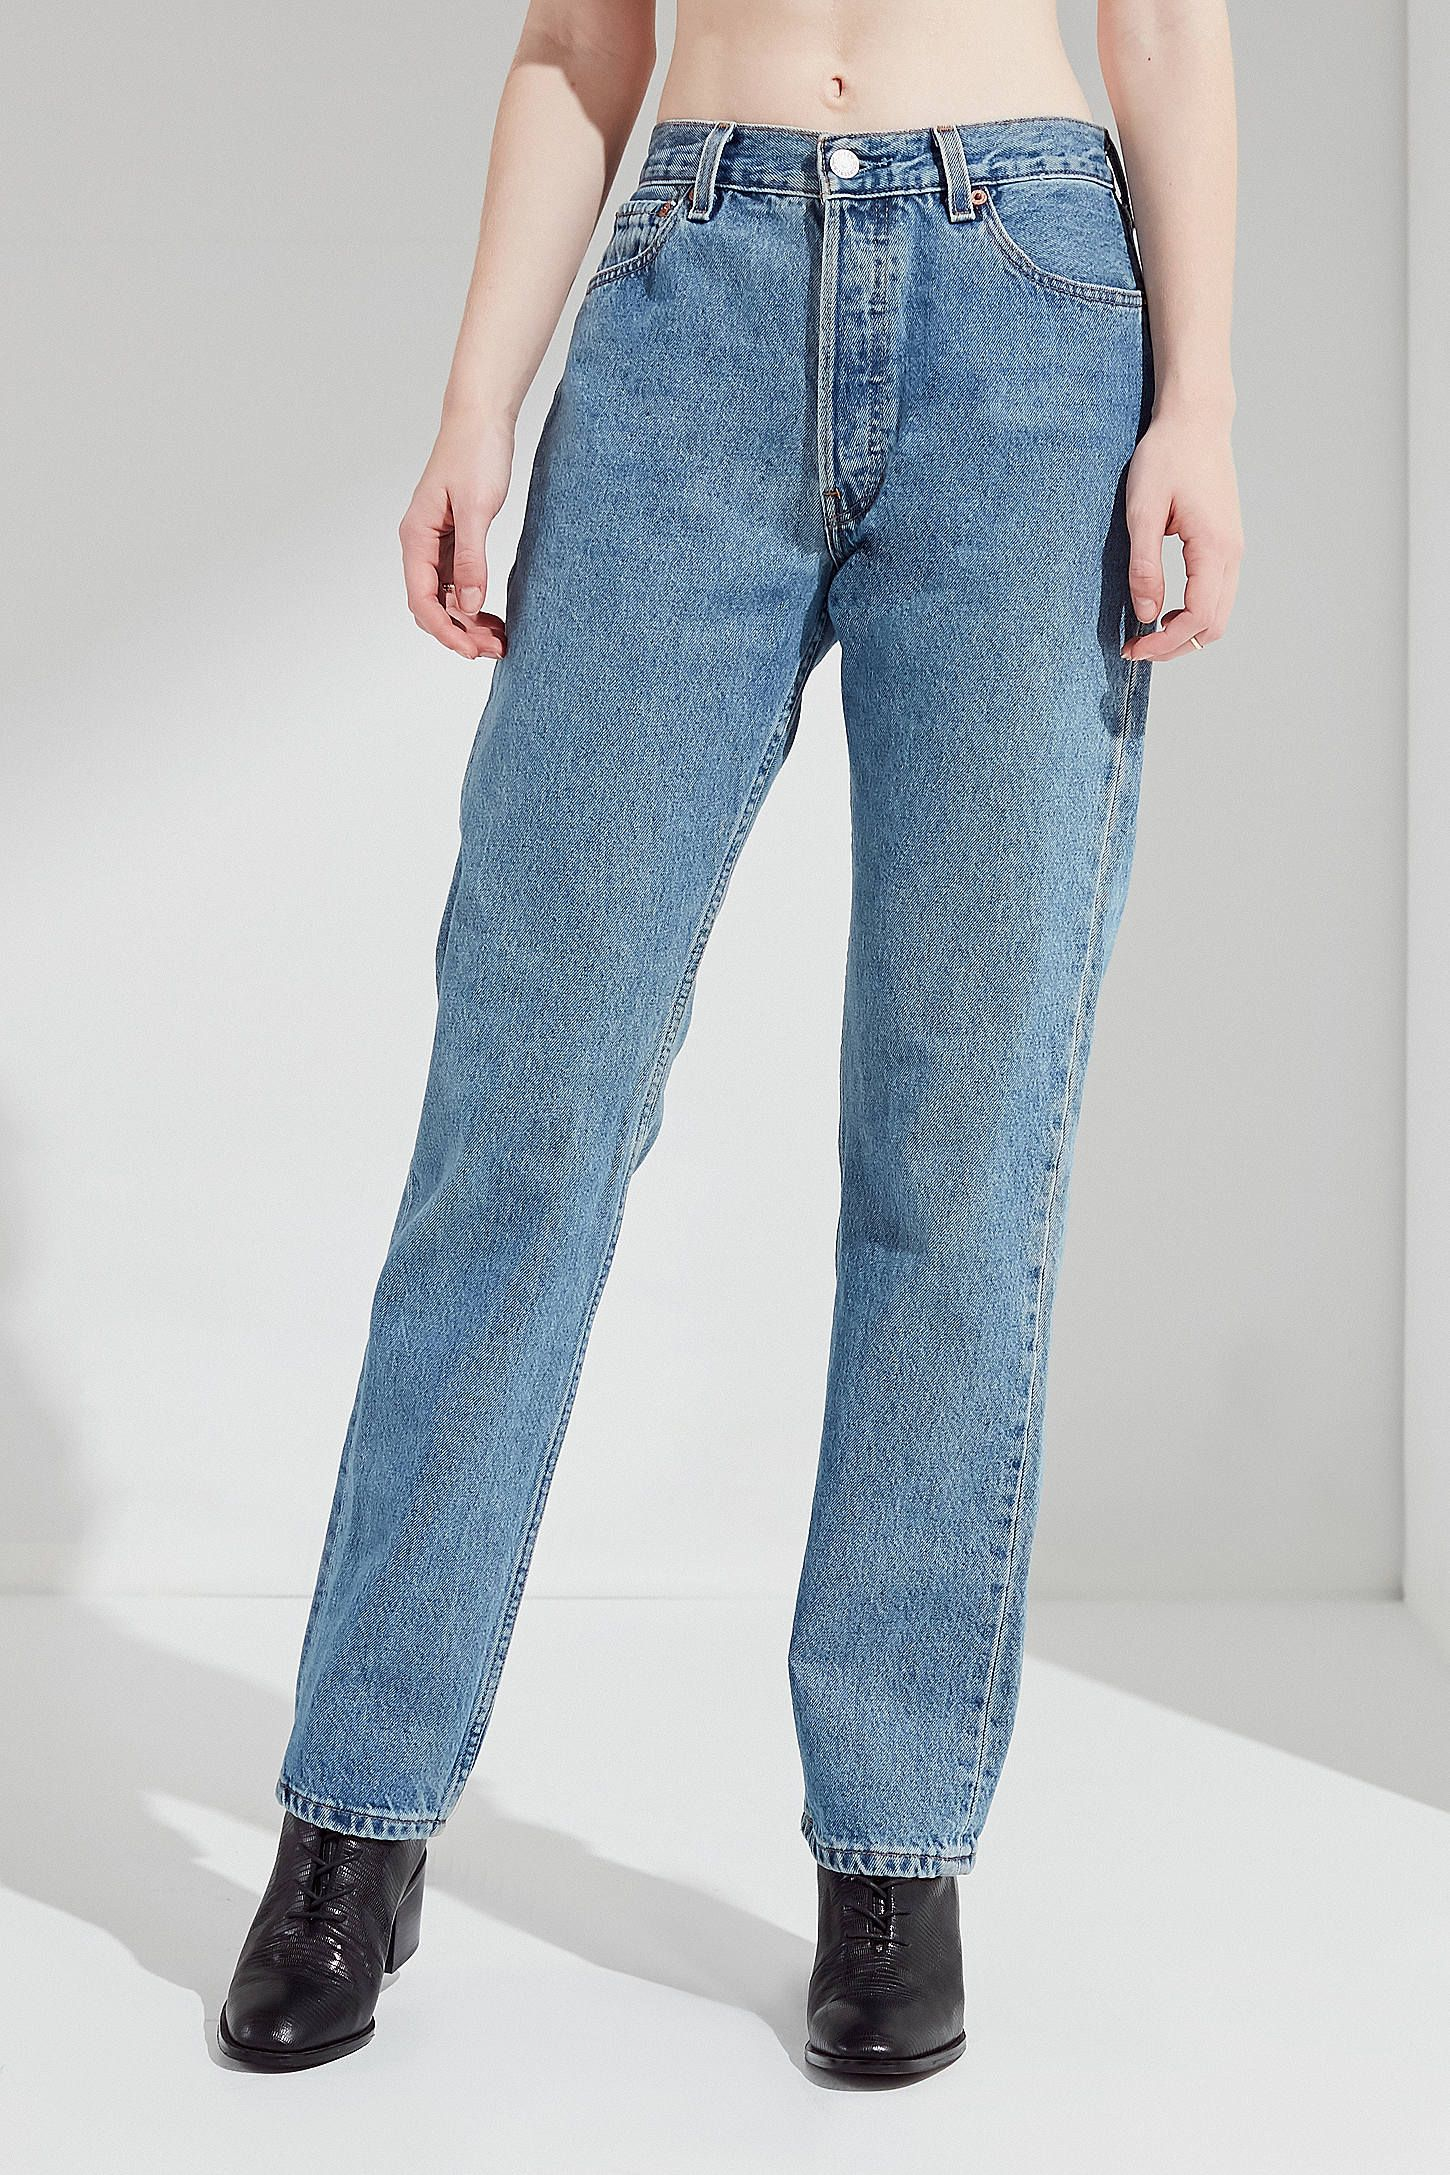 89cfbb7e Shop Vintage Levi's 501/505 Jean at Urban Outfitters today. We carry all  the latest styles, colors and brands for you to choose from right here.